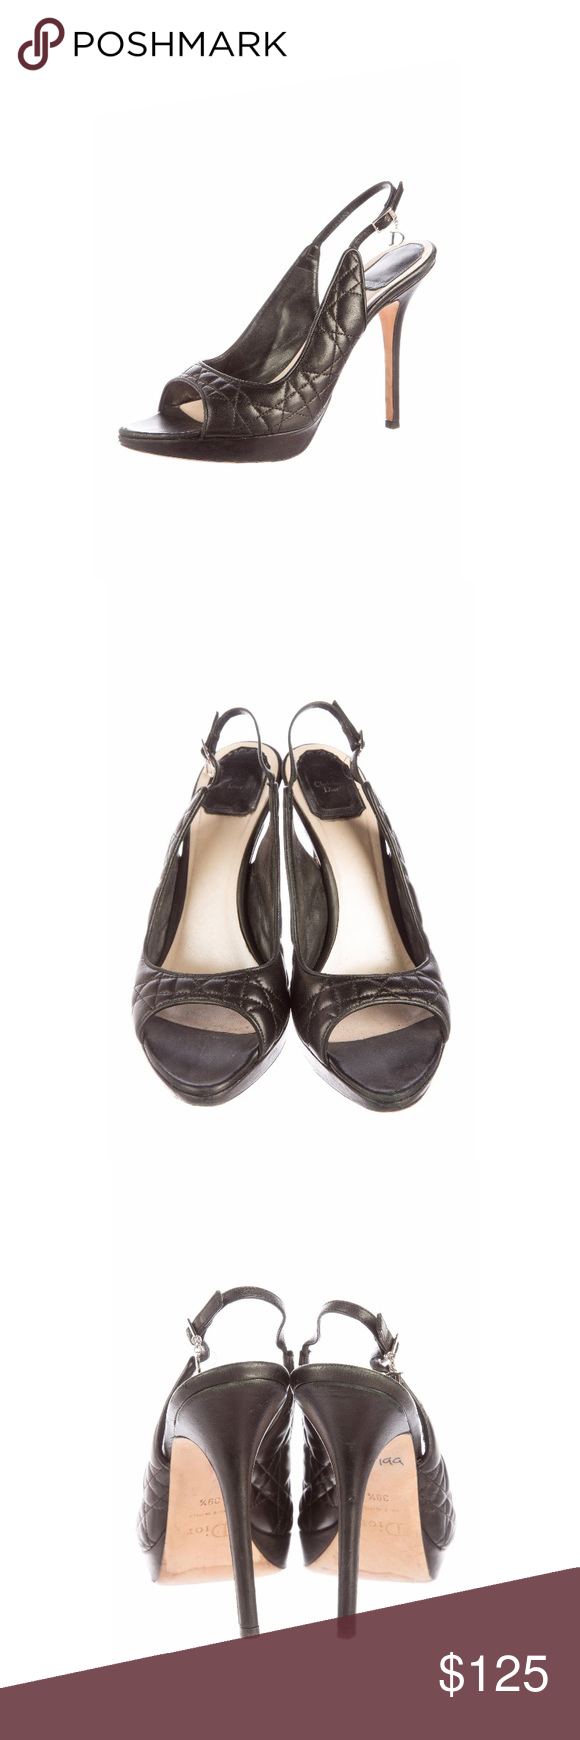 77c71e89dfc58c Christian Dior slingback pumps size 9.5 Black Cannage leather Christian Dior  slingback pumps with peep toes